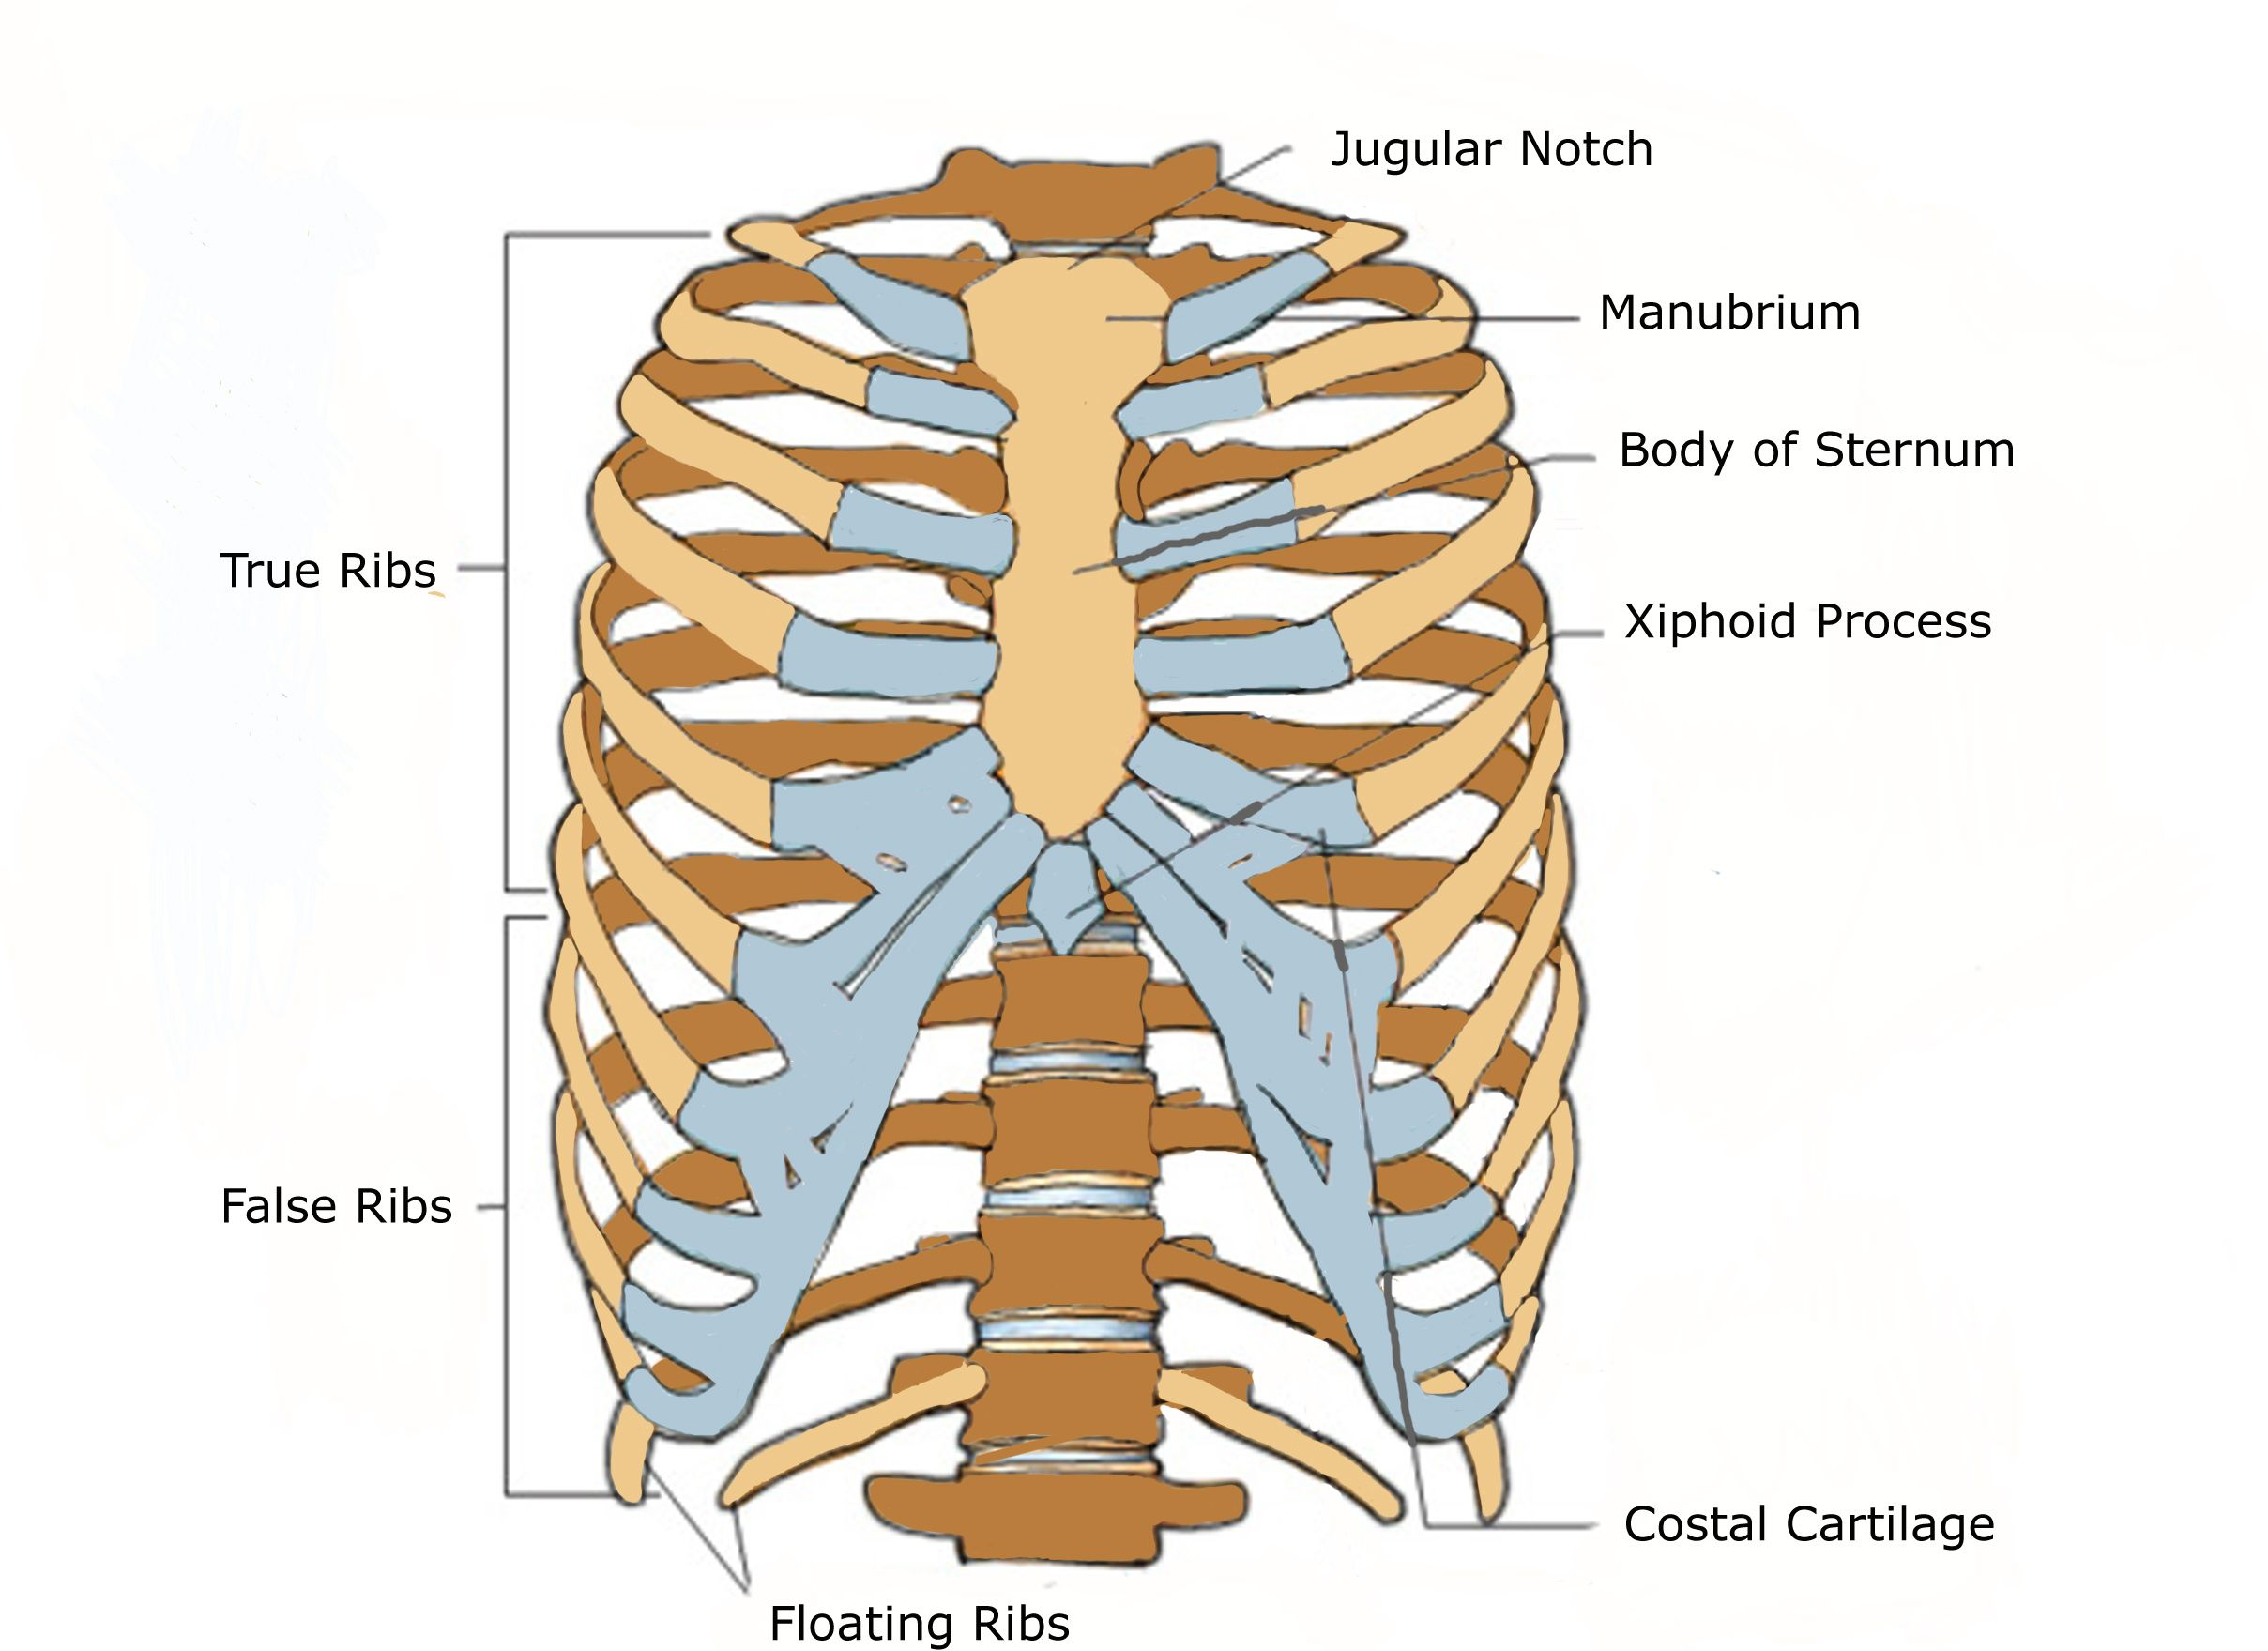 Cervicle Vertebrae And Ribs Diagram Theremin Schematic Anterior View Of A Human Thoracic Cage Andp Anatomy